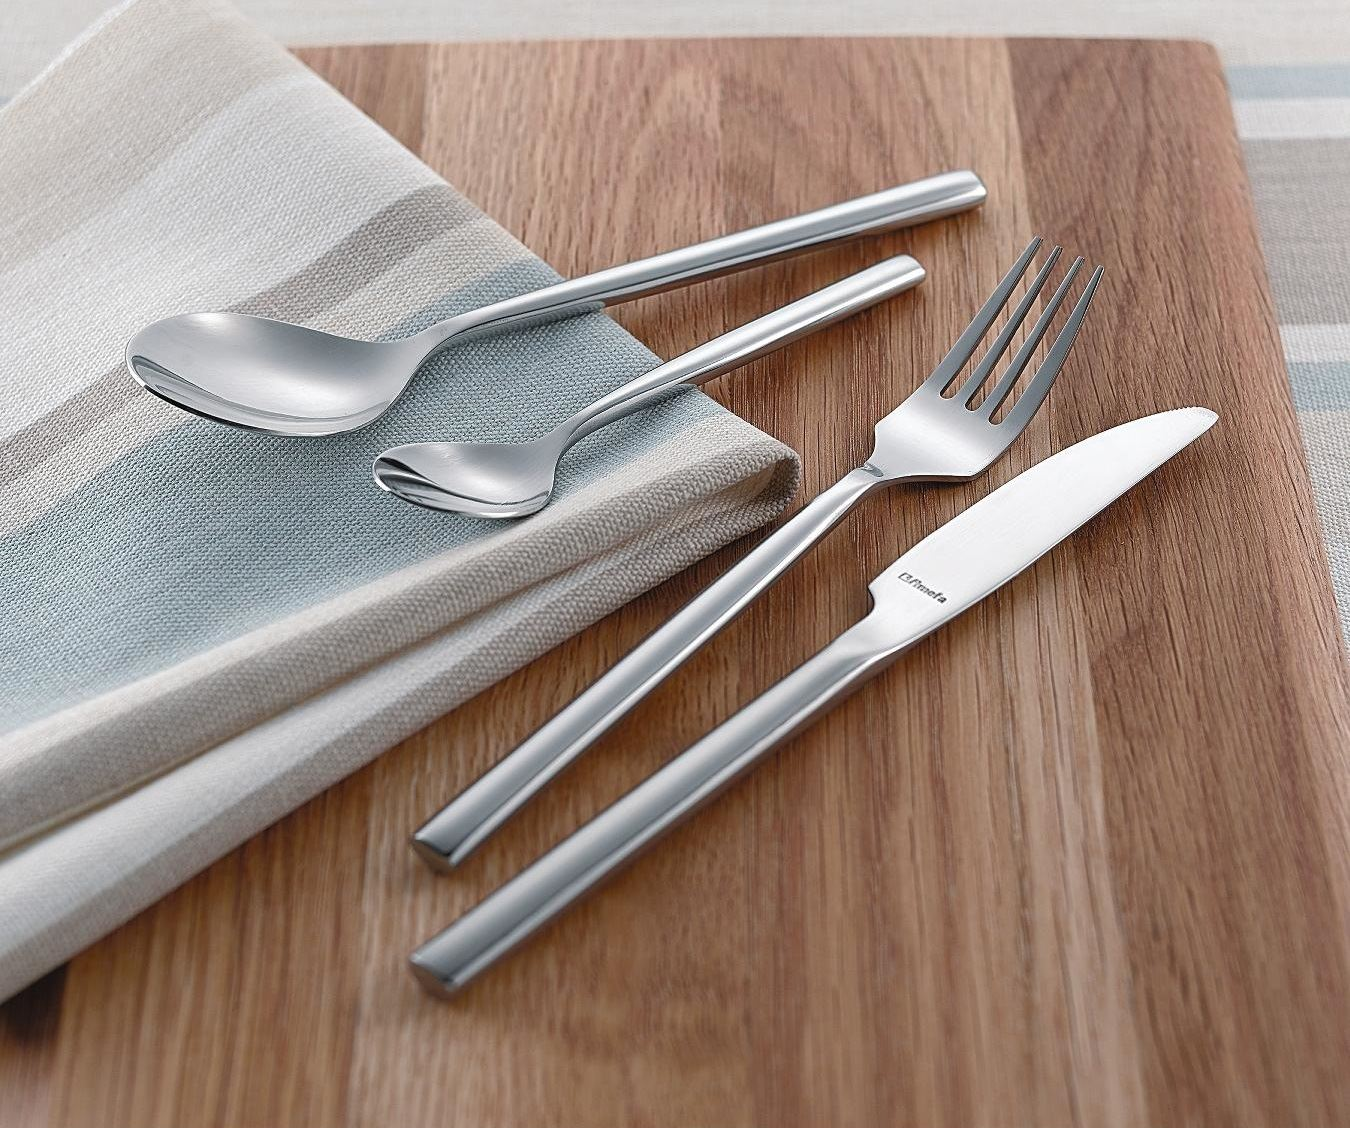 Contemporary Stainless Steel Flatware Amefa Modern Premium Carlton Polished Stainless Steel